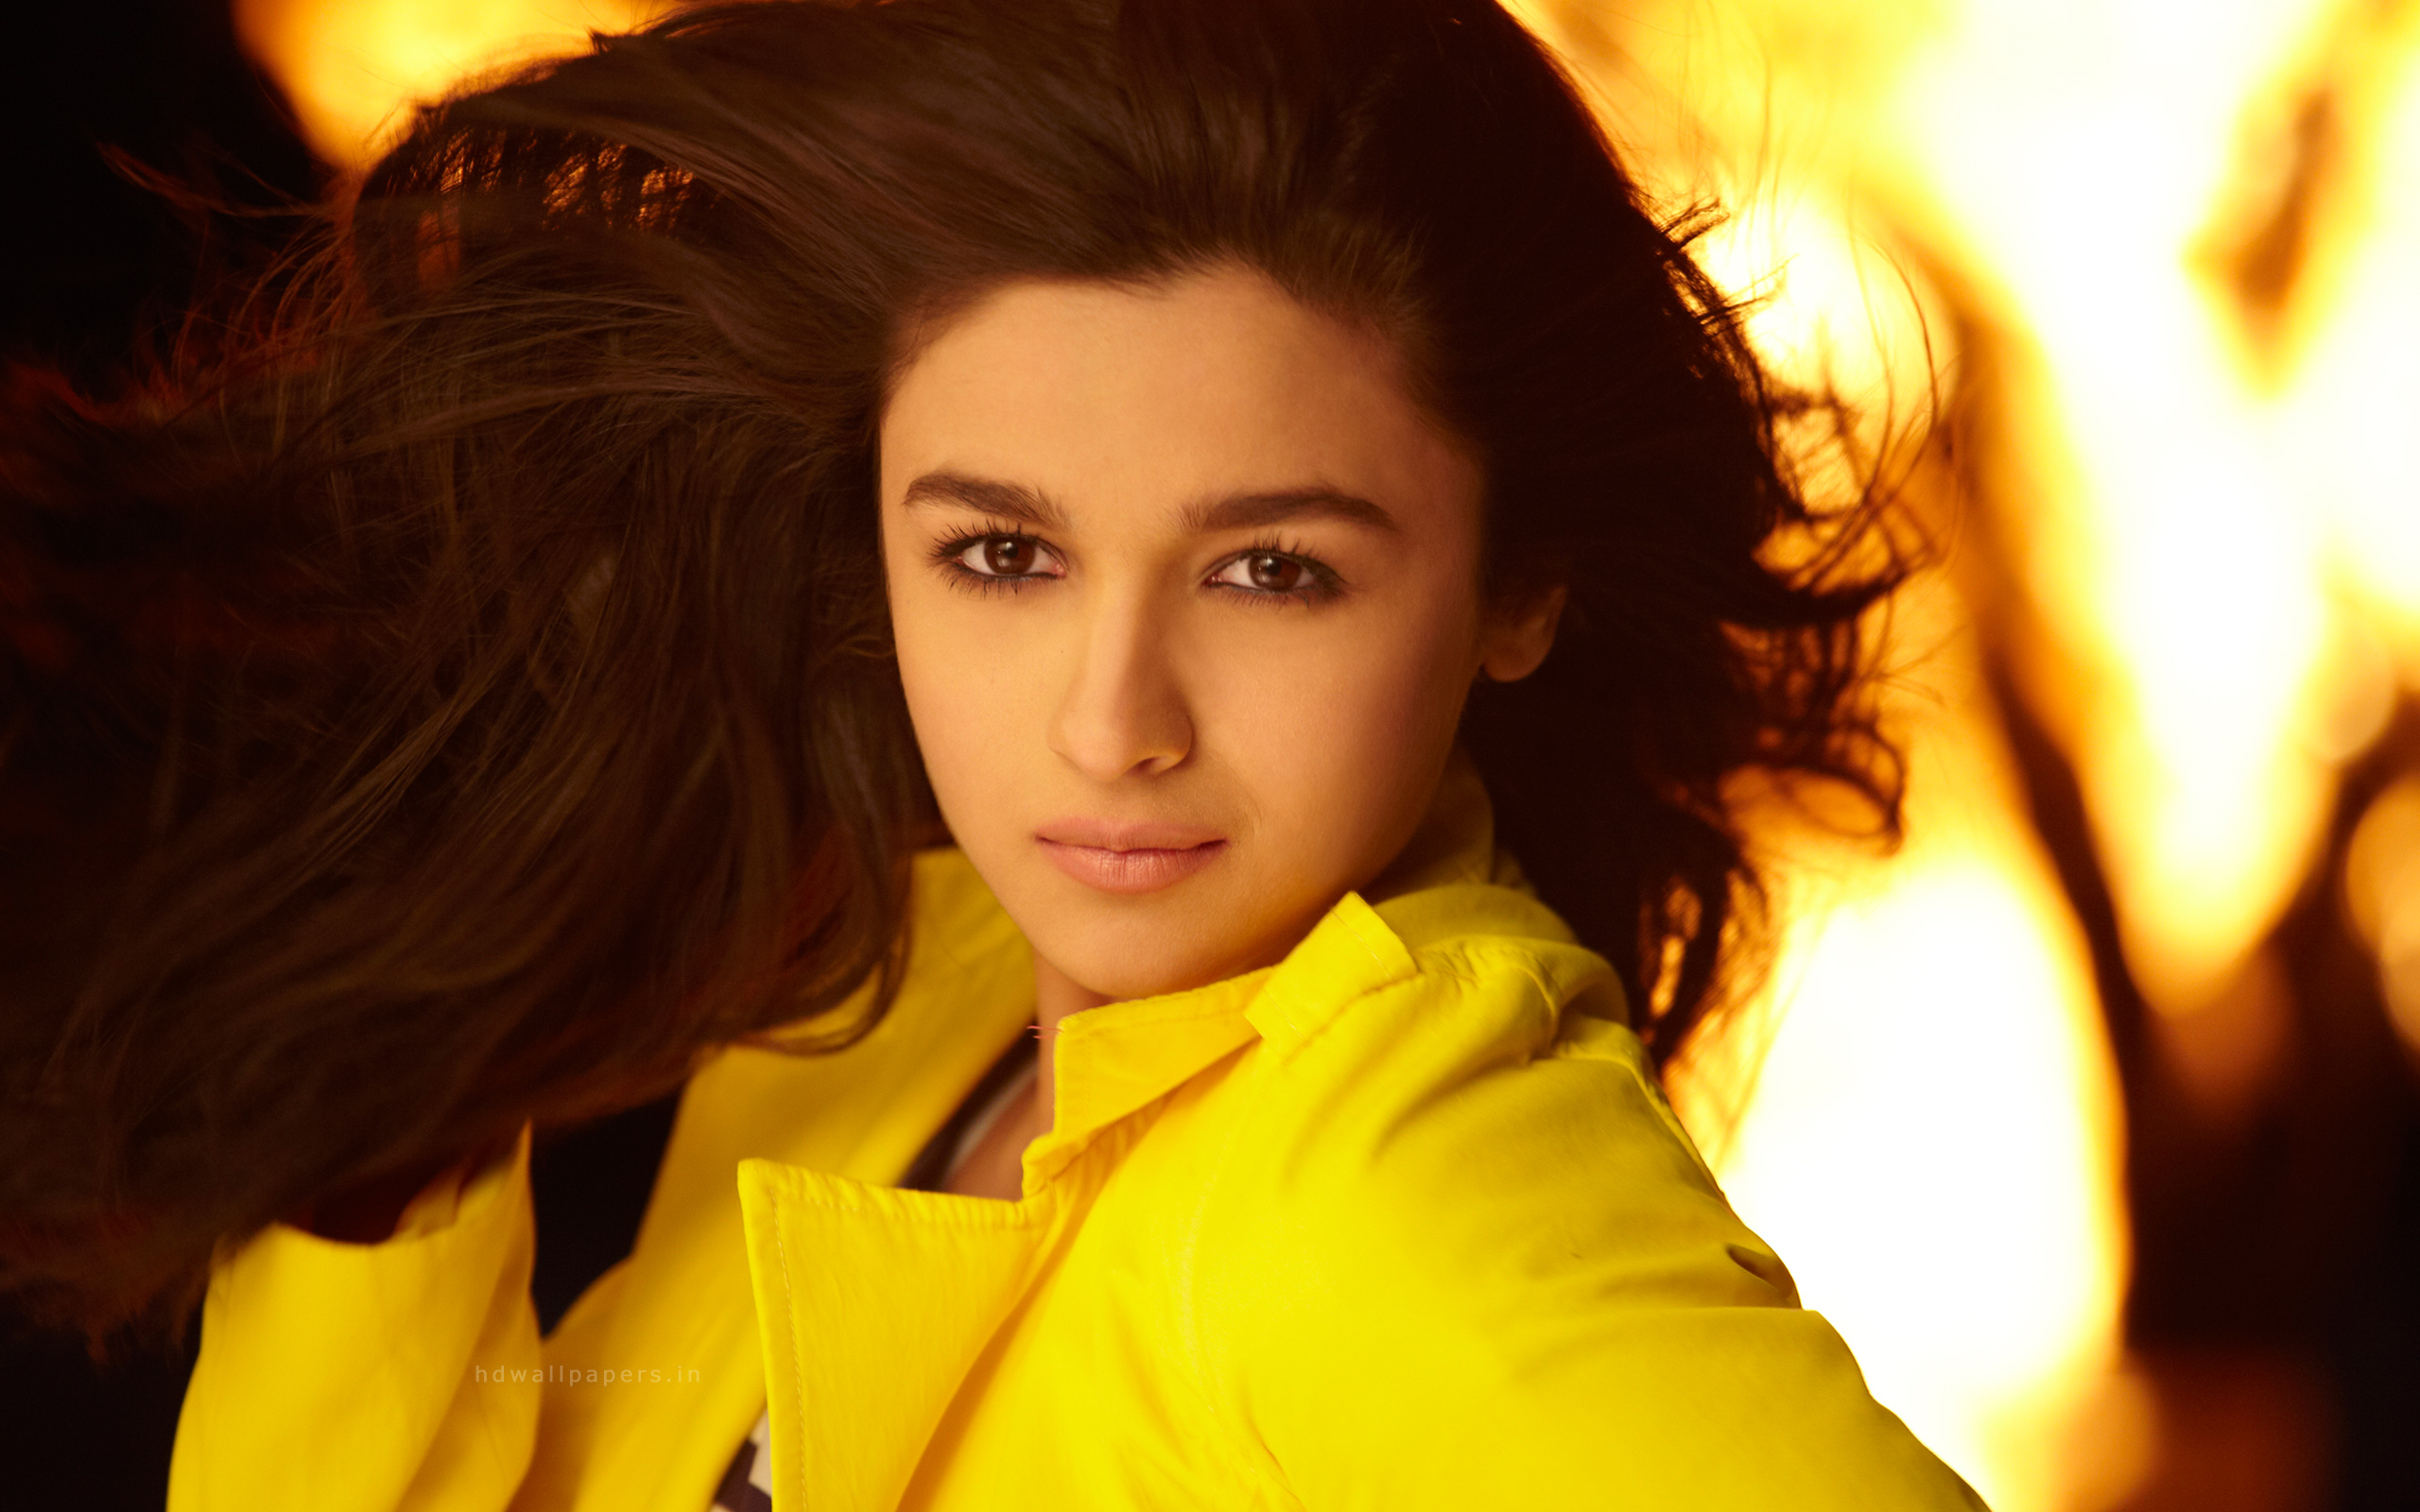 Alia Bhatt download free for desktop